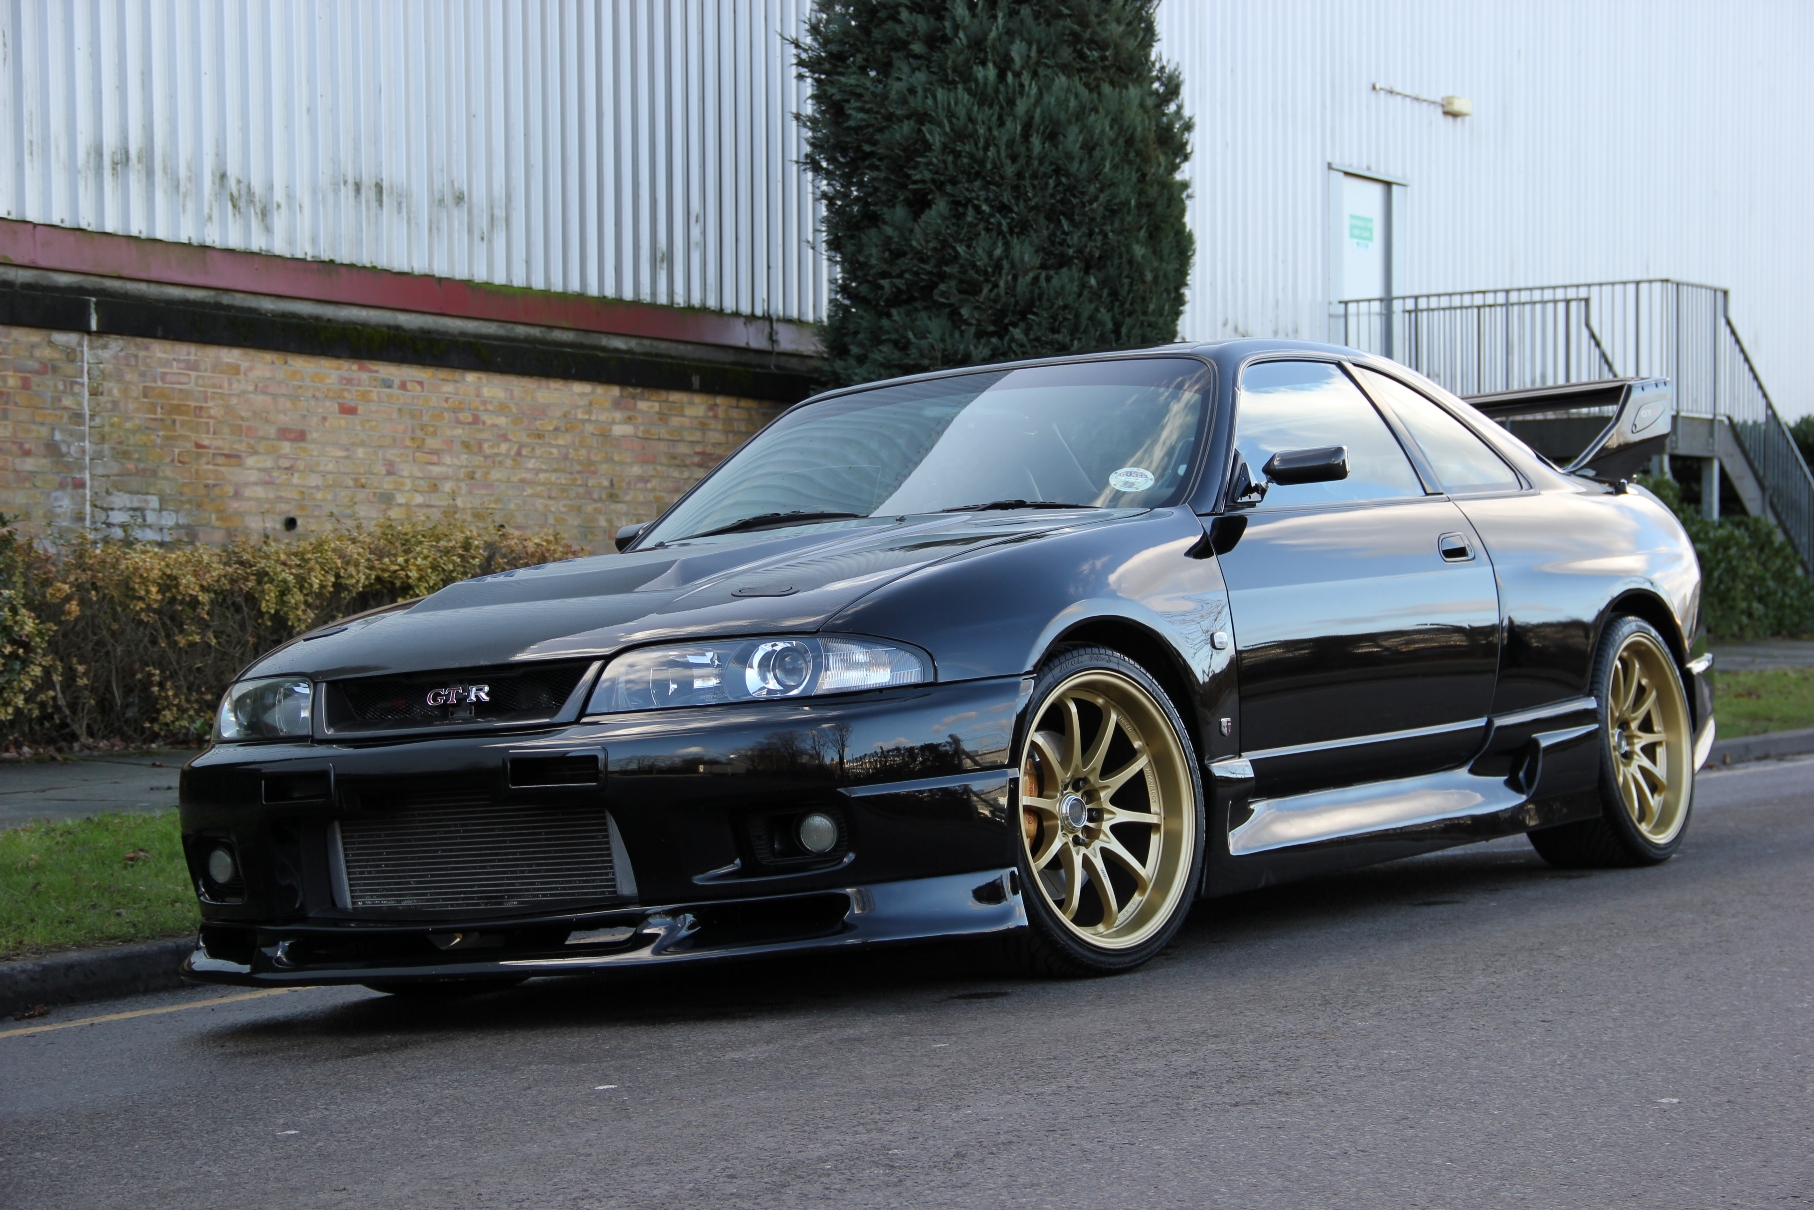 Nissan Skyline Gtr R33 Modified ✓ Nissan Recomended Car